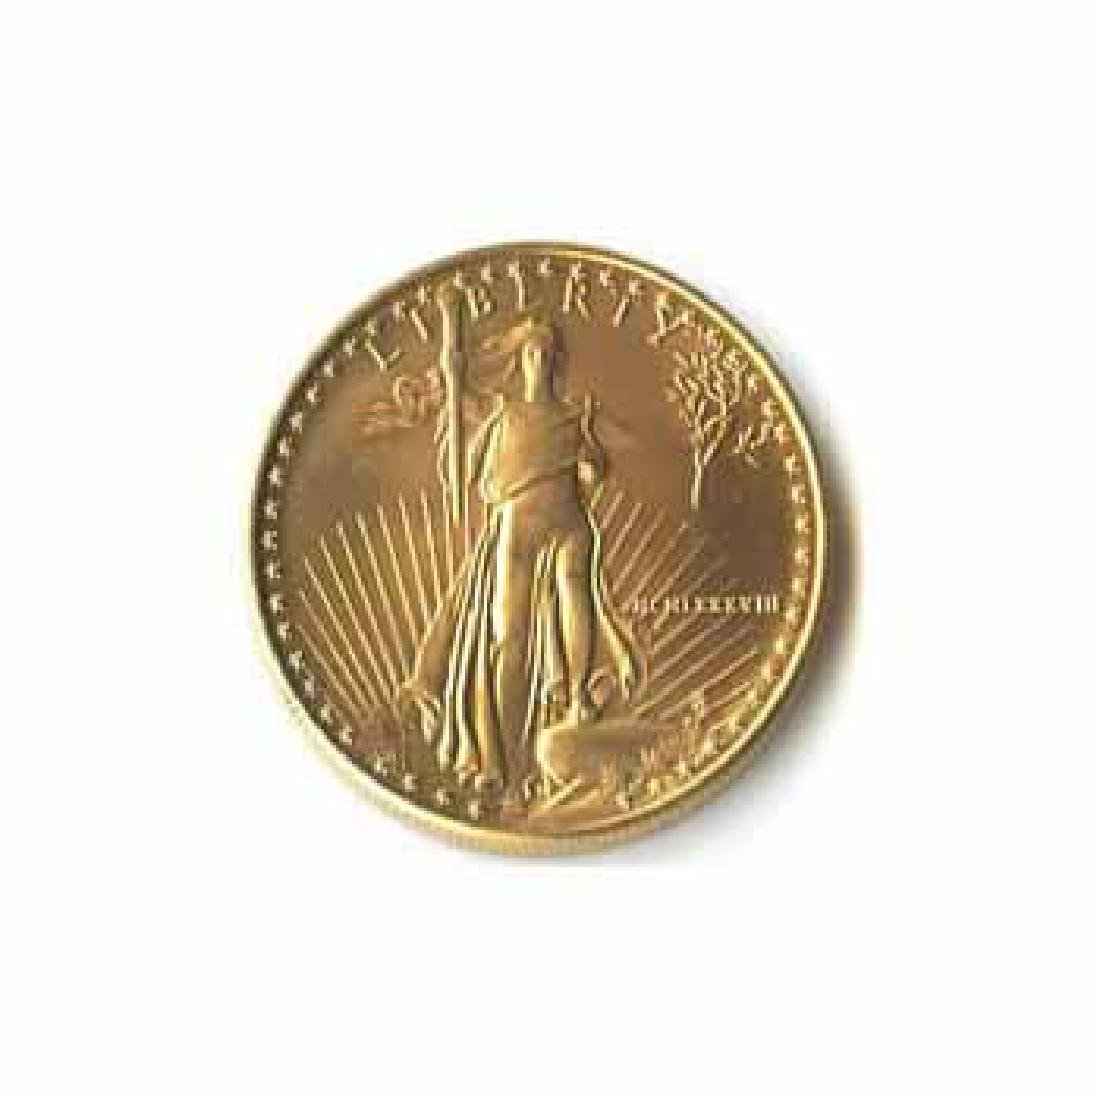 1988 American Gold Eagle 1/10 oz Uncirculated